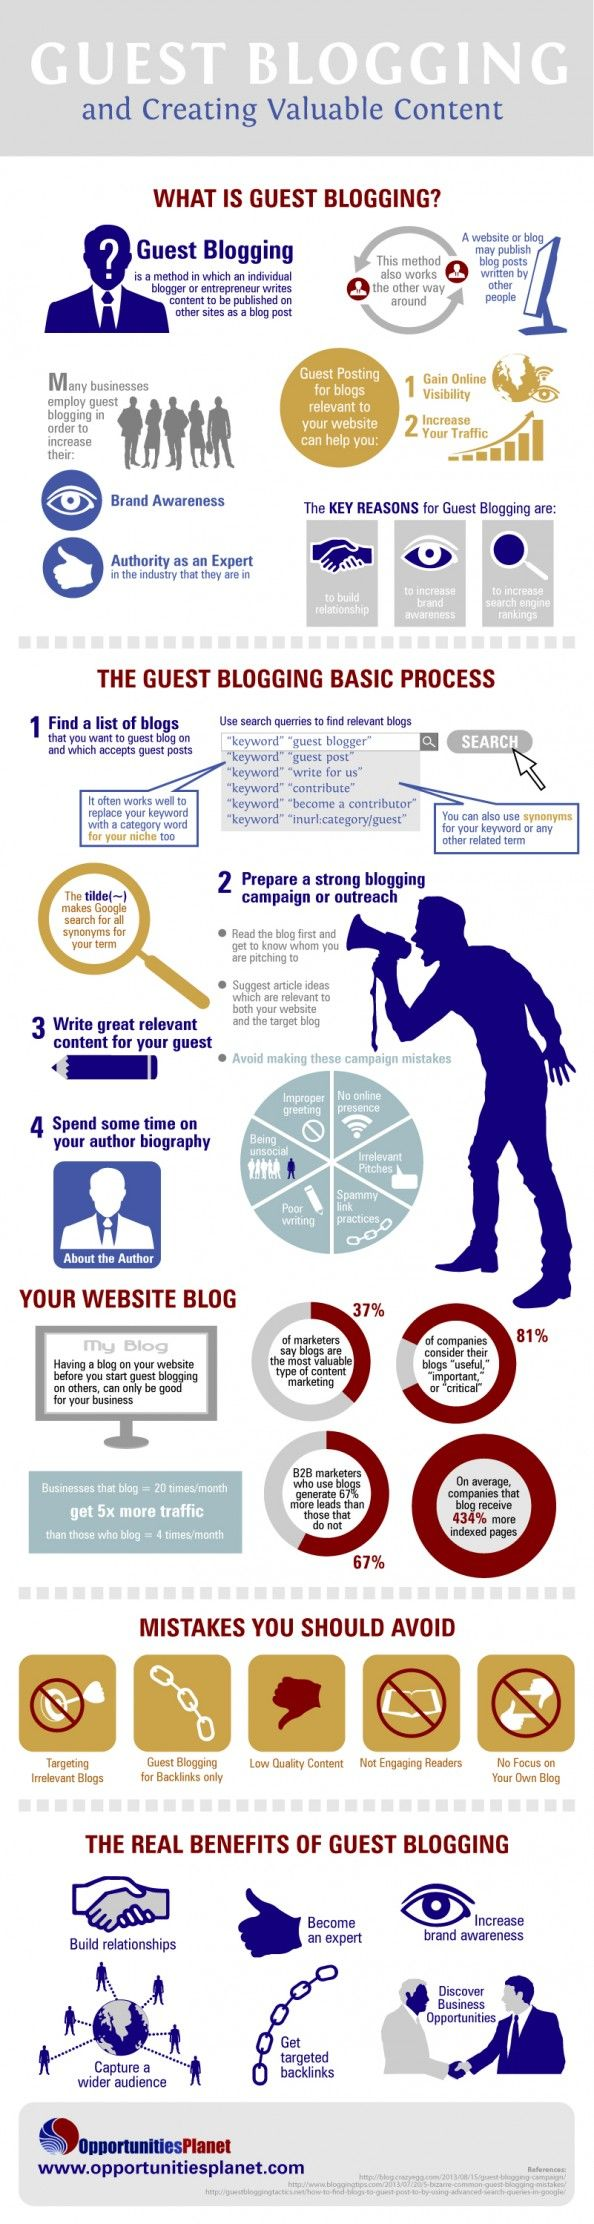 Guest #Blogging and Creating Valuable #Content